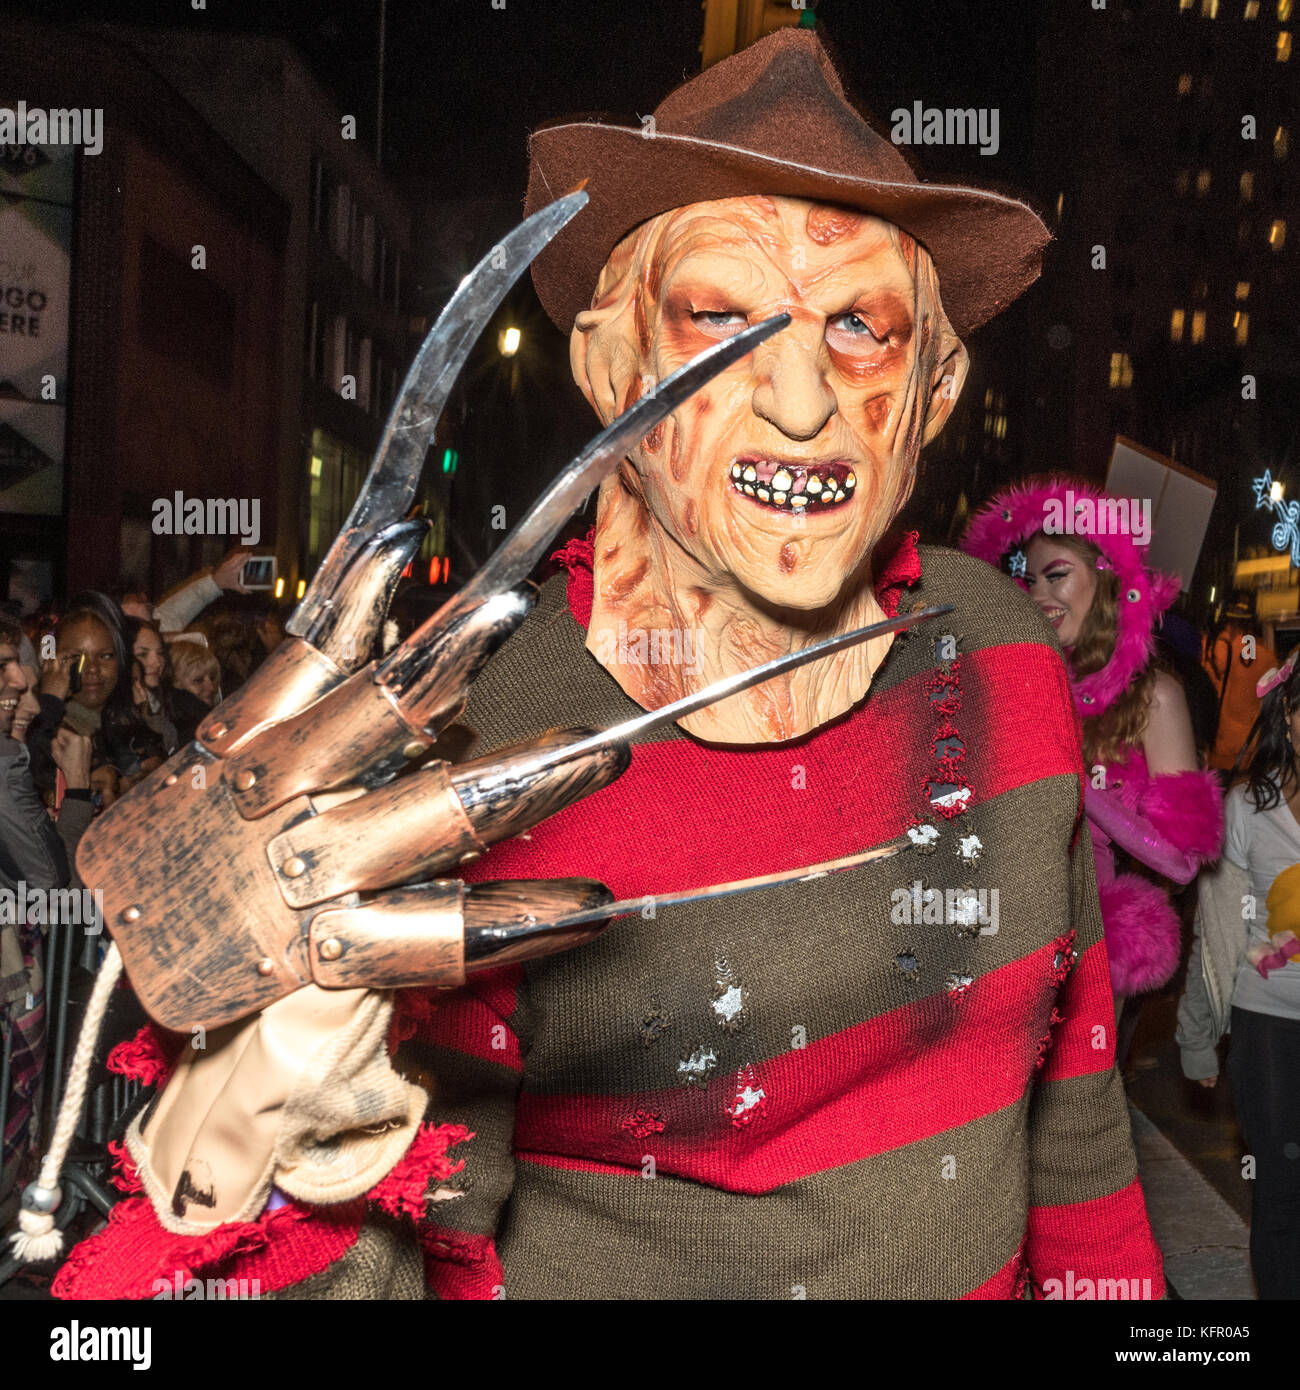 freddy krueger stock photos & freddy krueger stock images - alamy